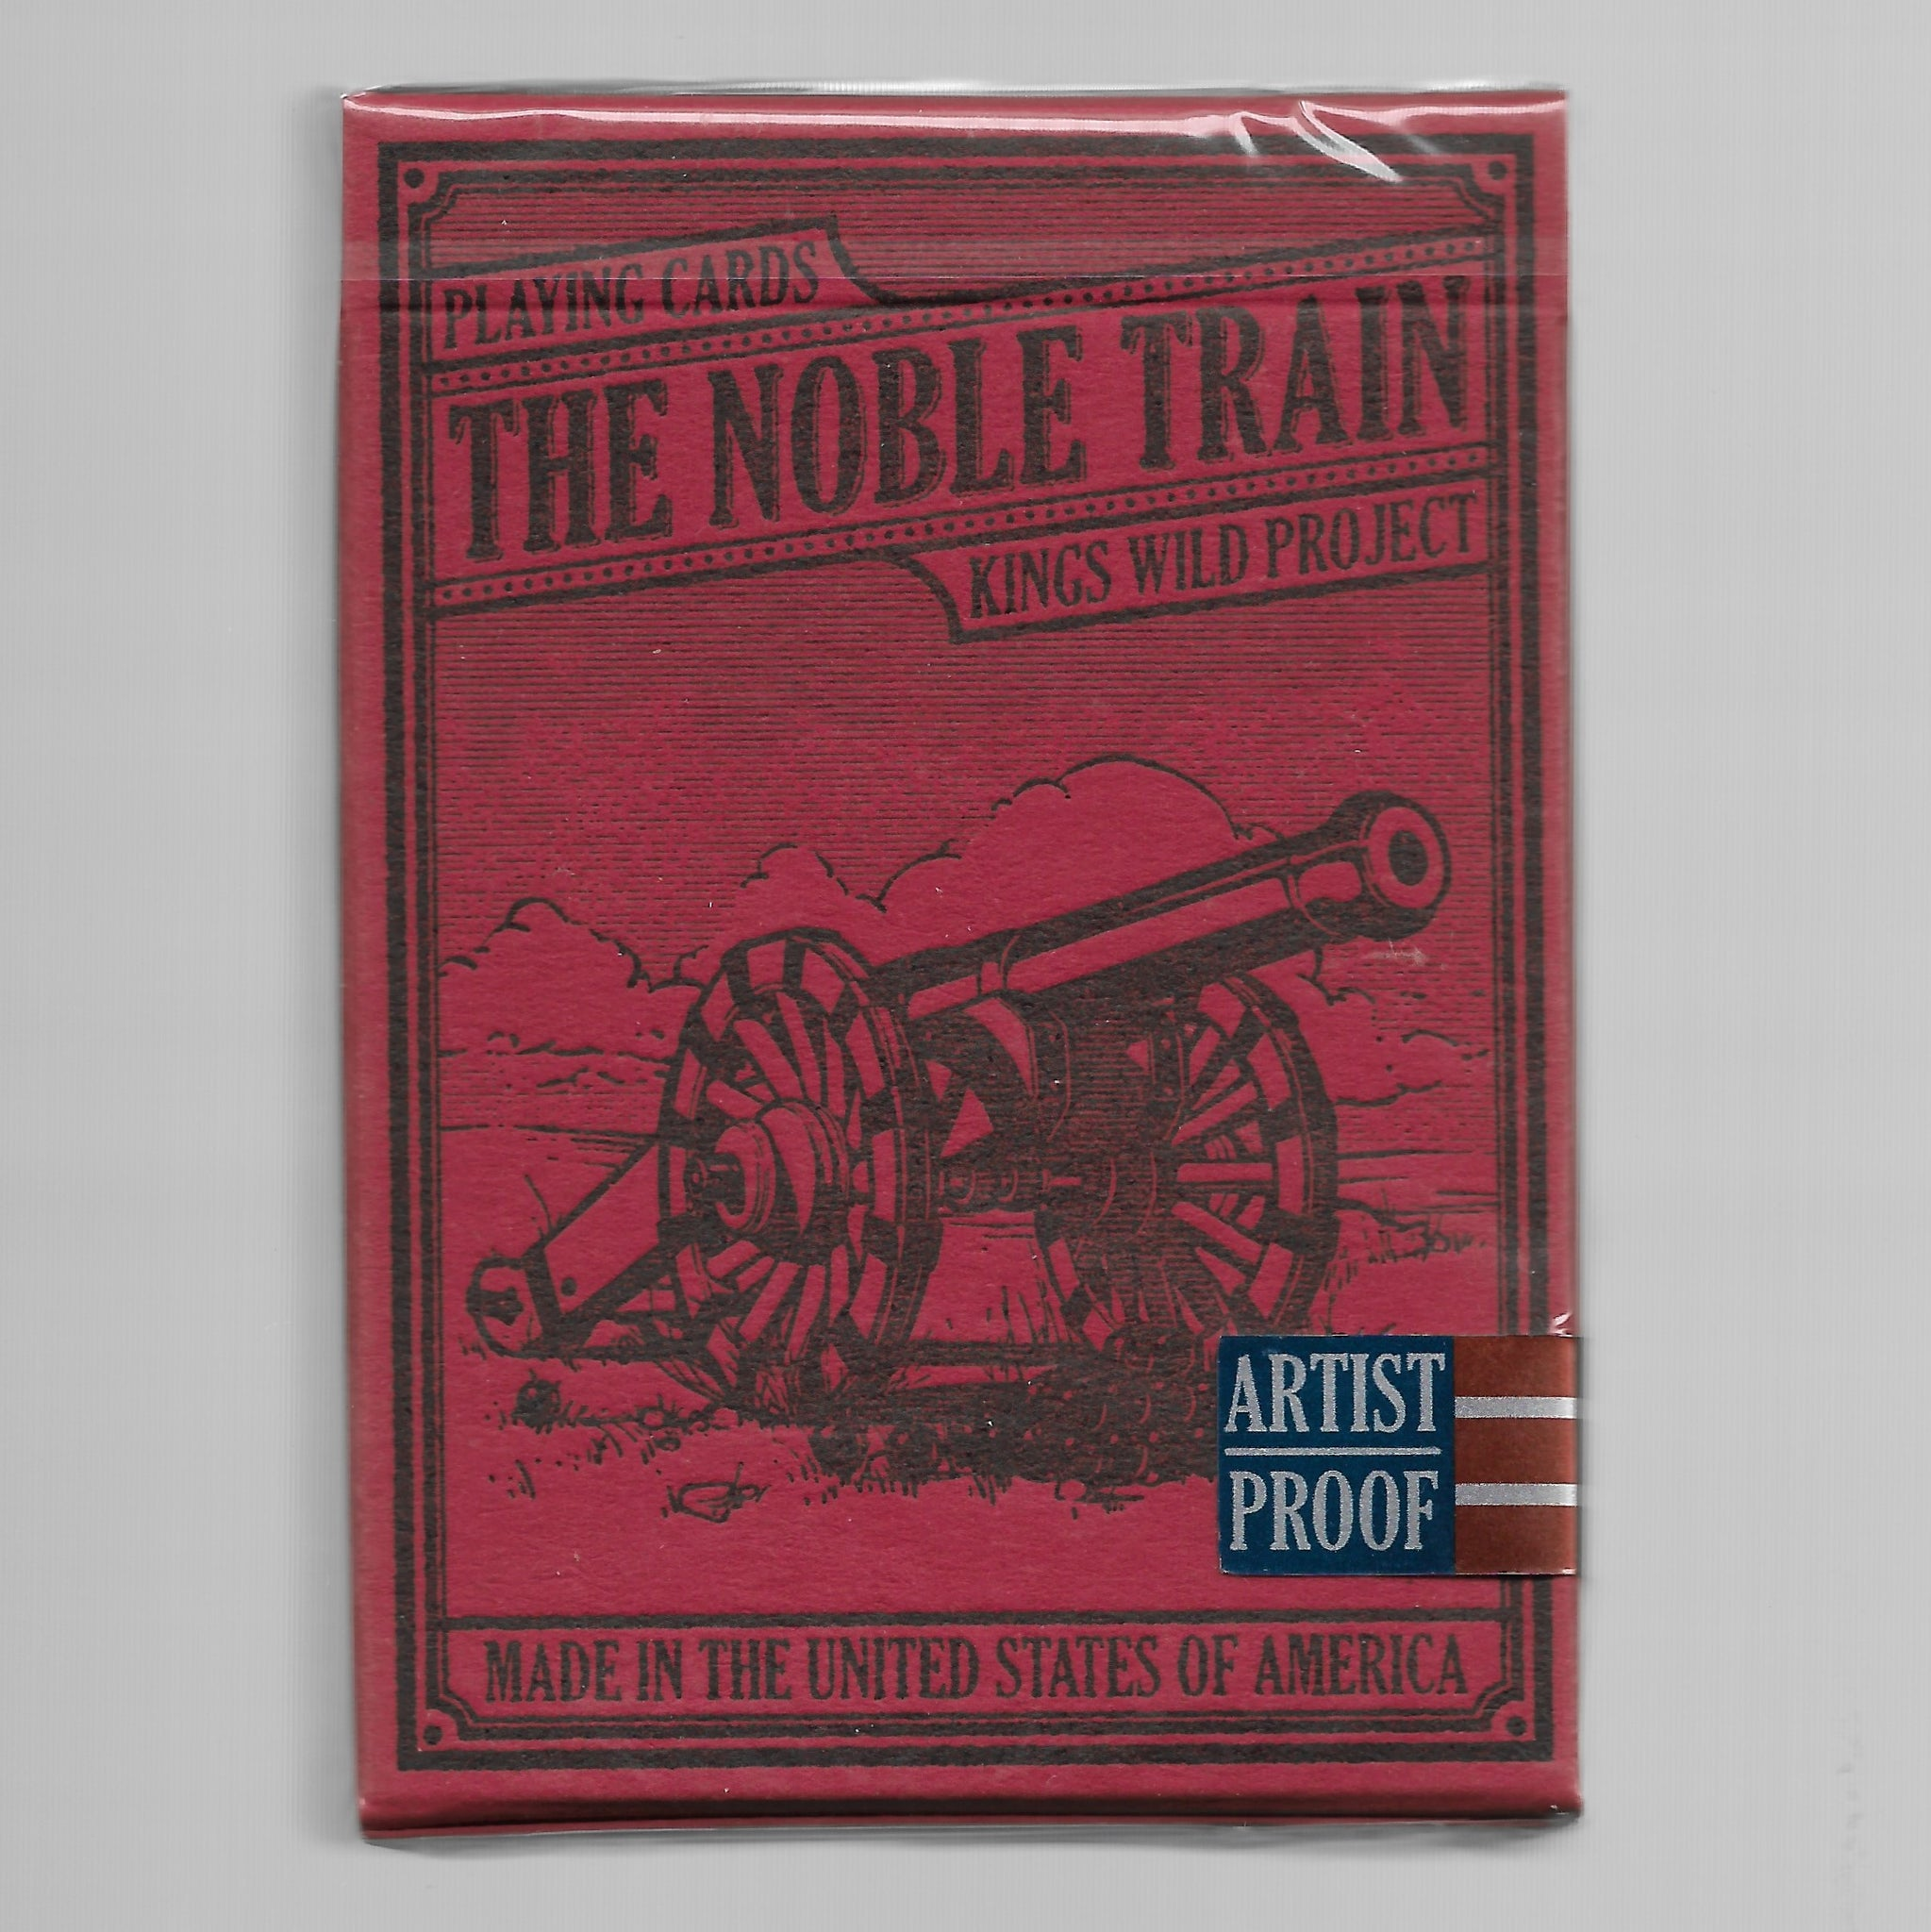 The Noble Train (Shorts Deck - Limited - ARTIST PROOF)